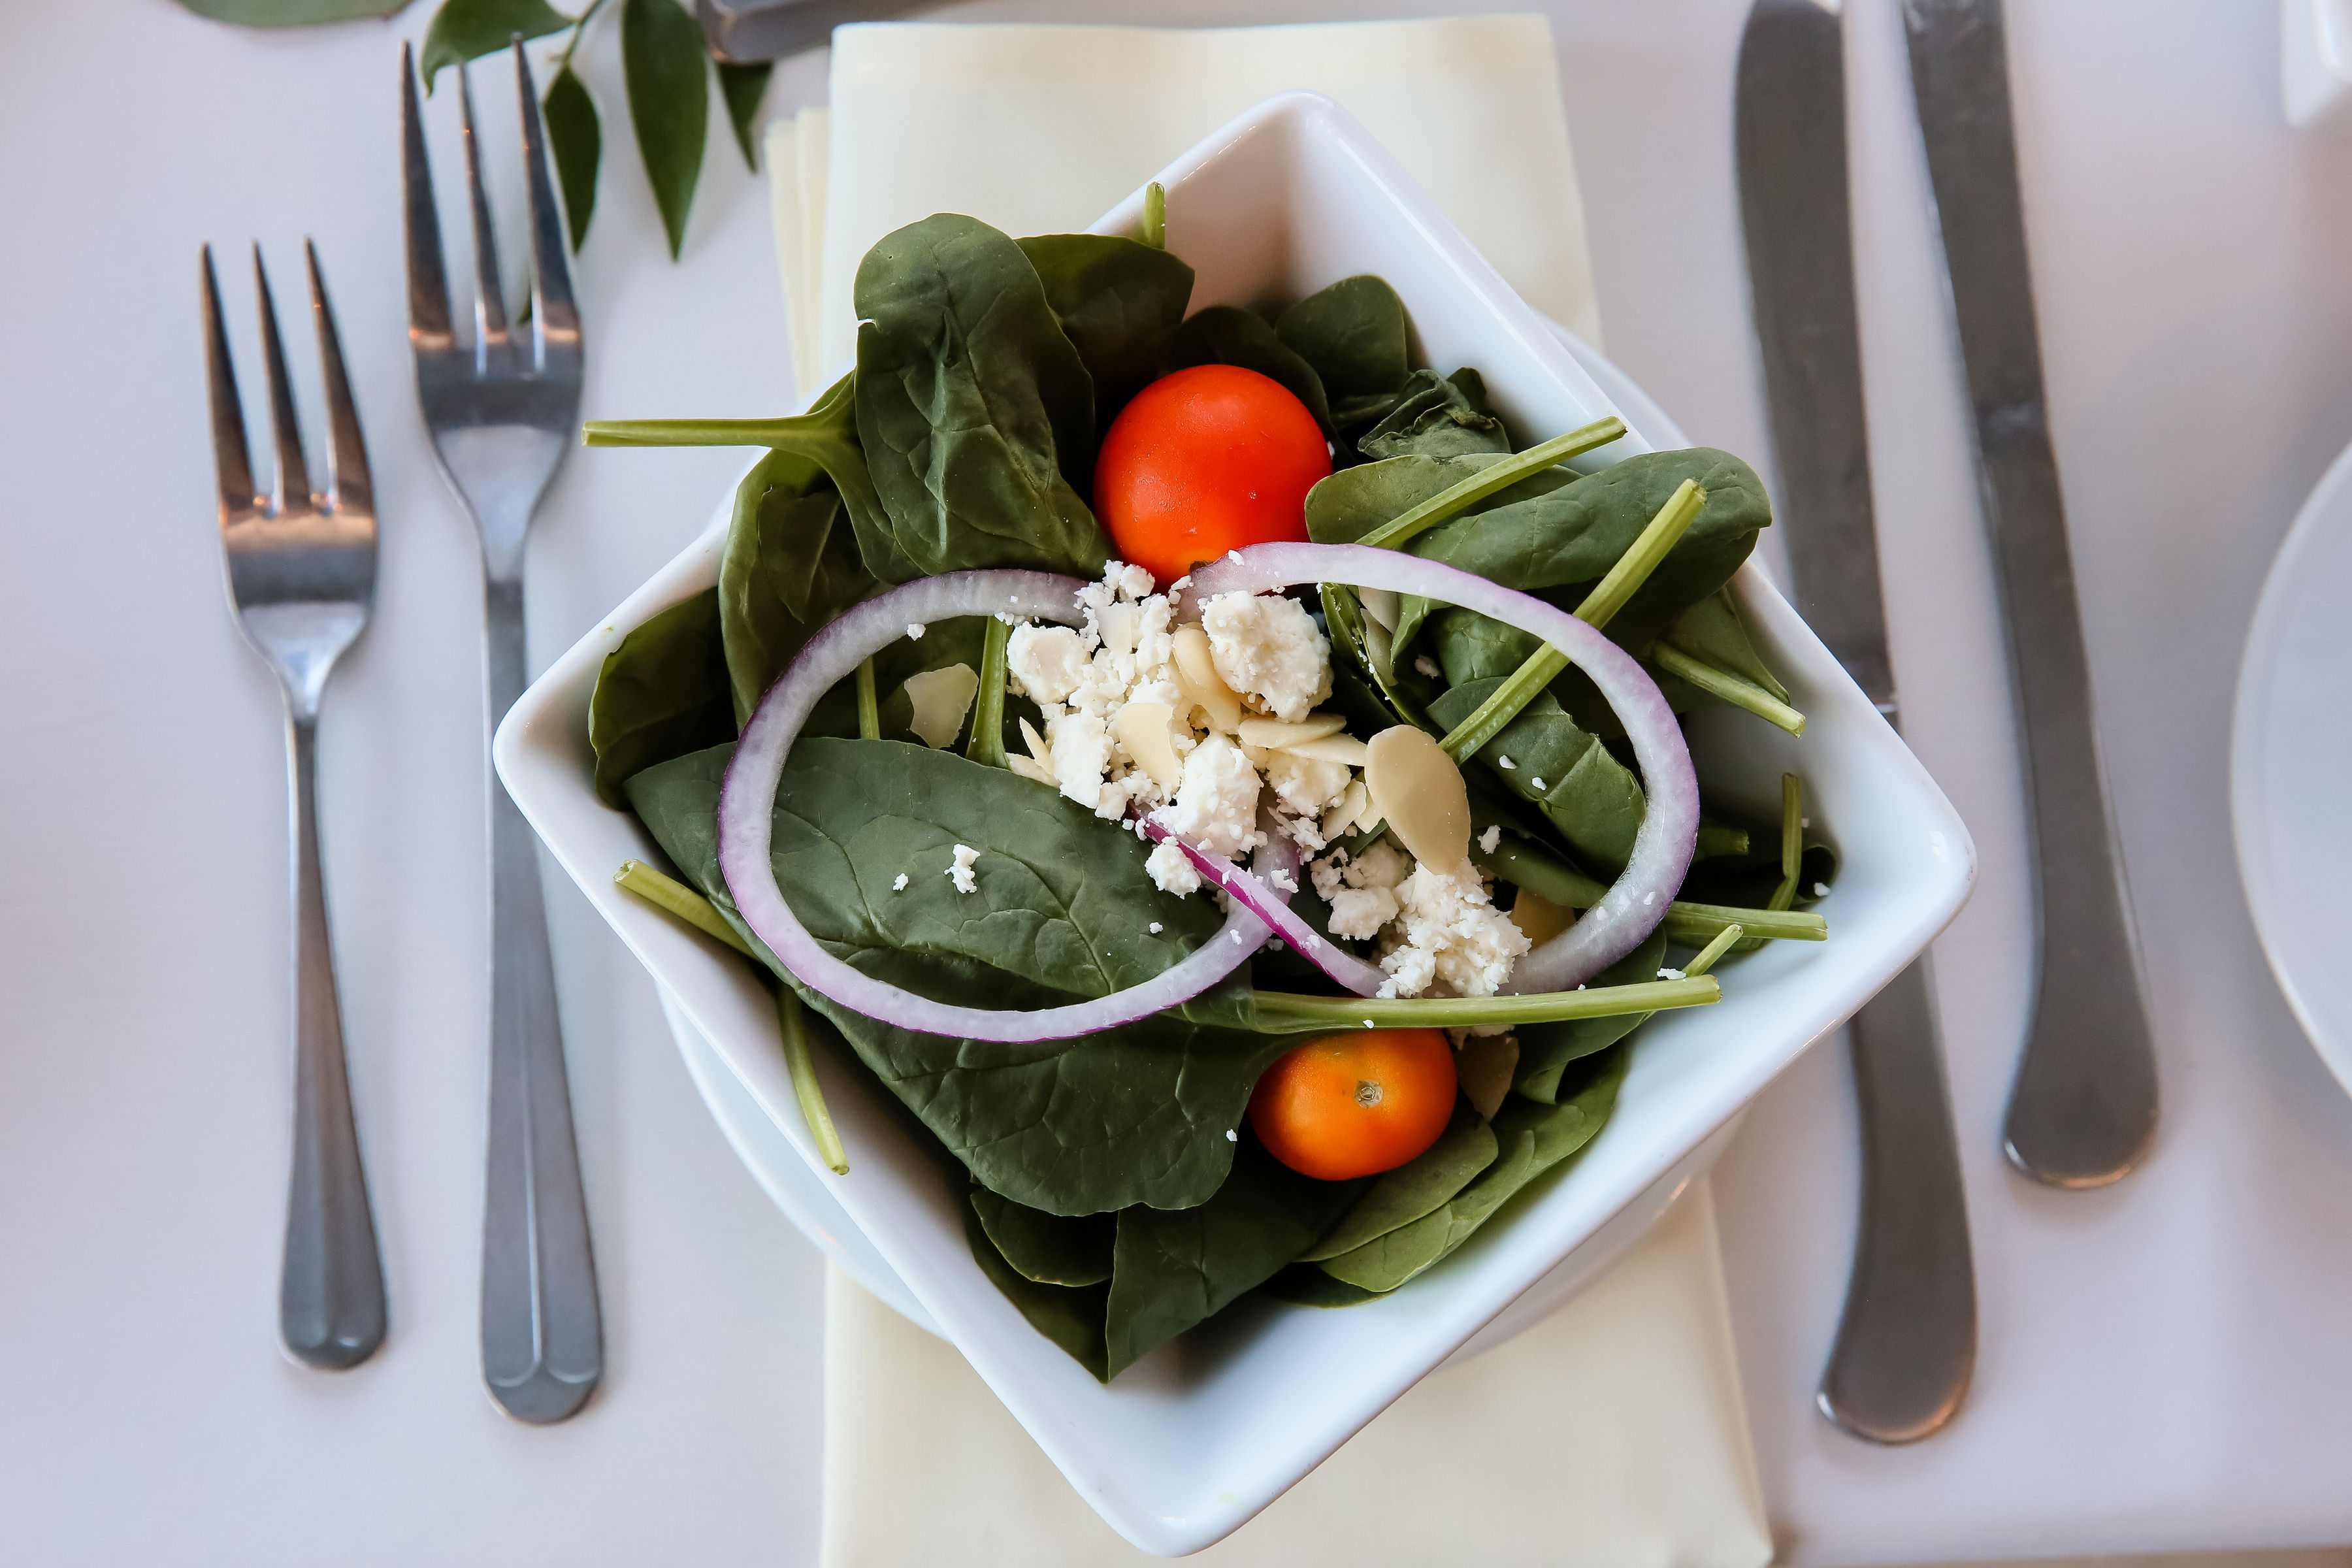 Spinach salad with goat cheese on a white set table.